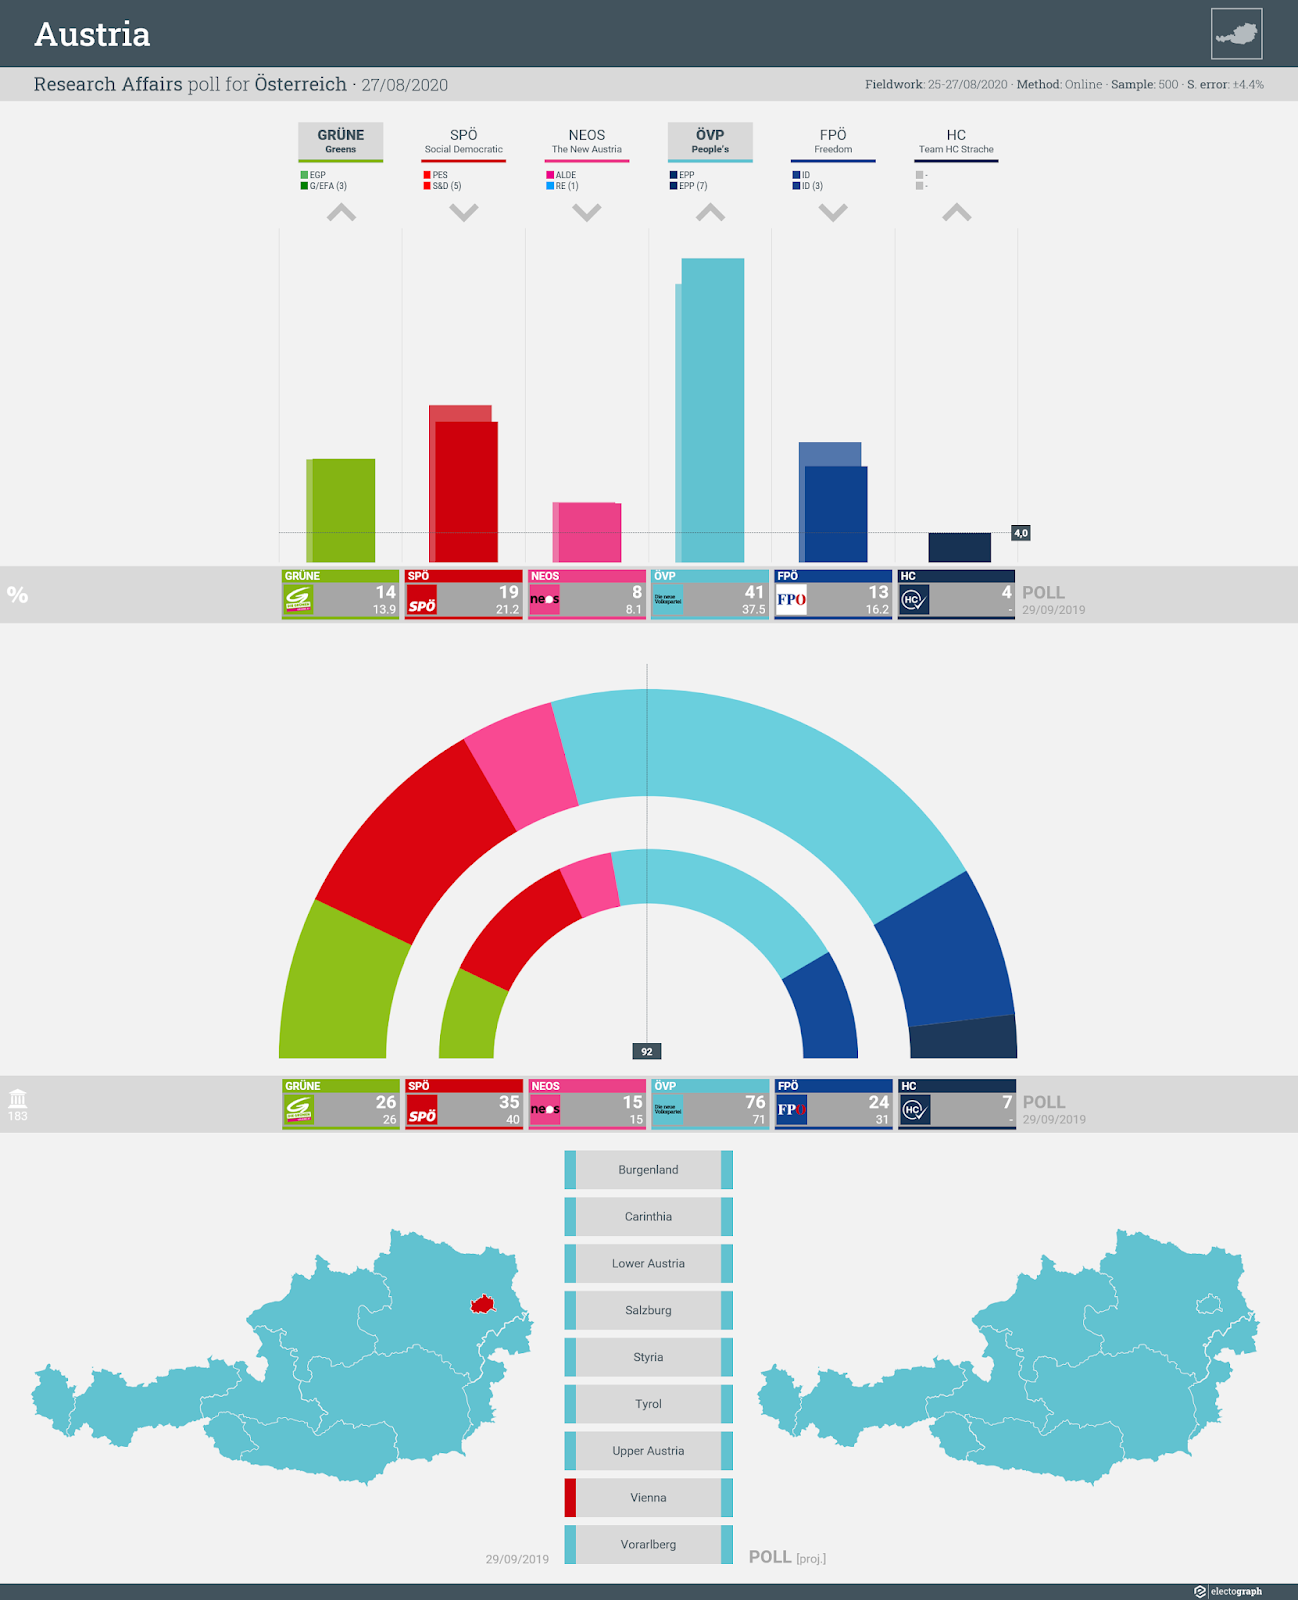 AUSTRIA: Research Affairs poll chart for Österreich, 27 August 2020